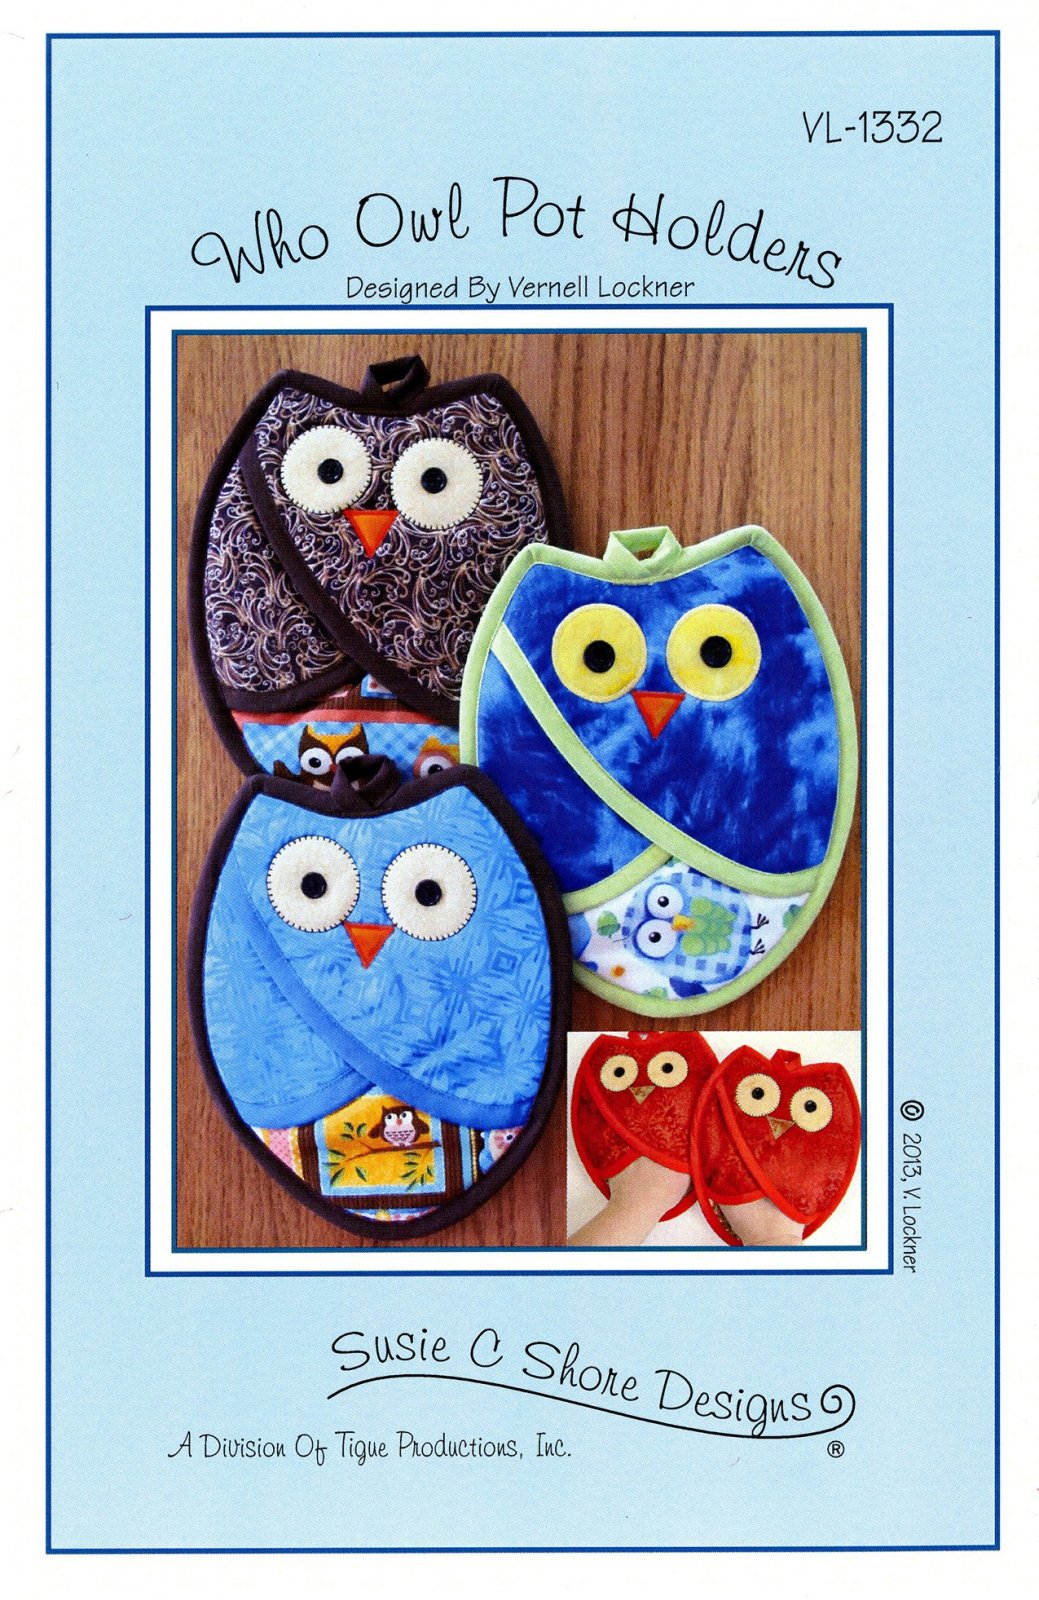 Who Owl Pot Holders